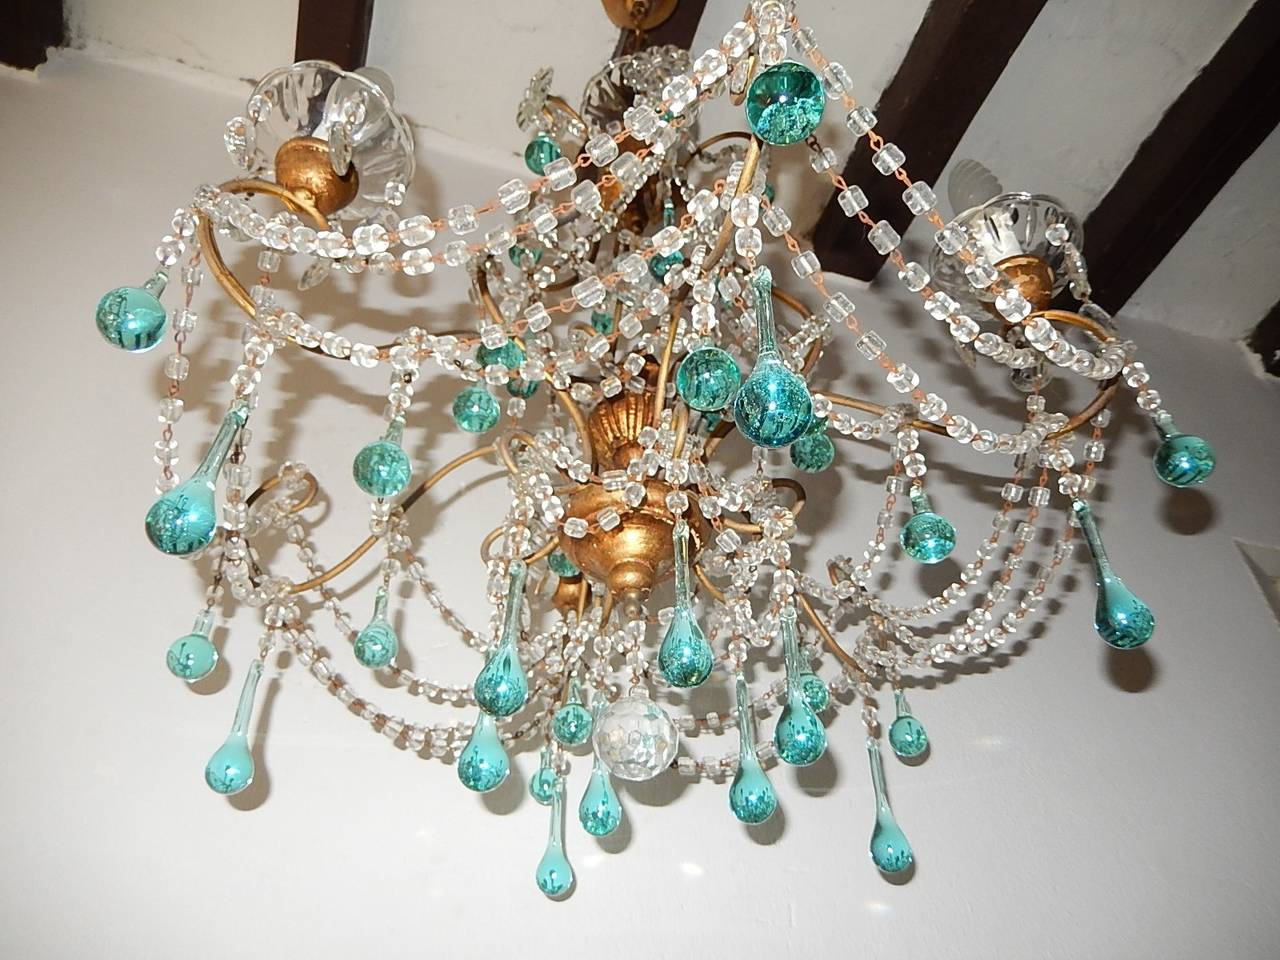 French aqua blue balls and drops crystal chandelier circa 1920 at french aqua blue balls and drops crystal chandelier circa 1920 in excellent condition for sale mozeypictures Gallery